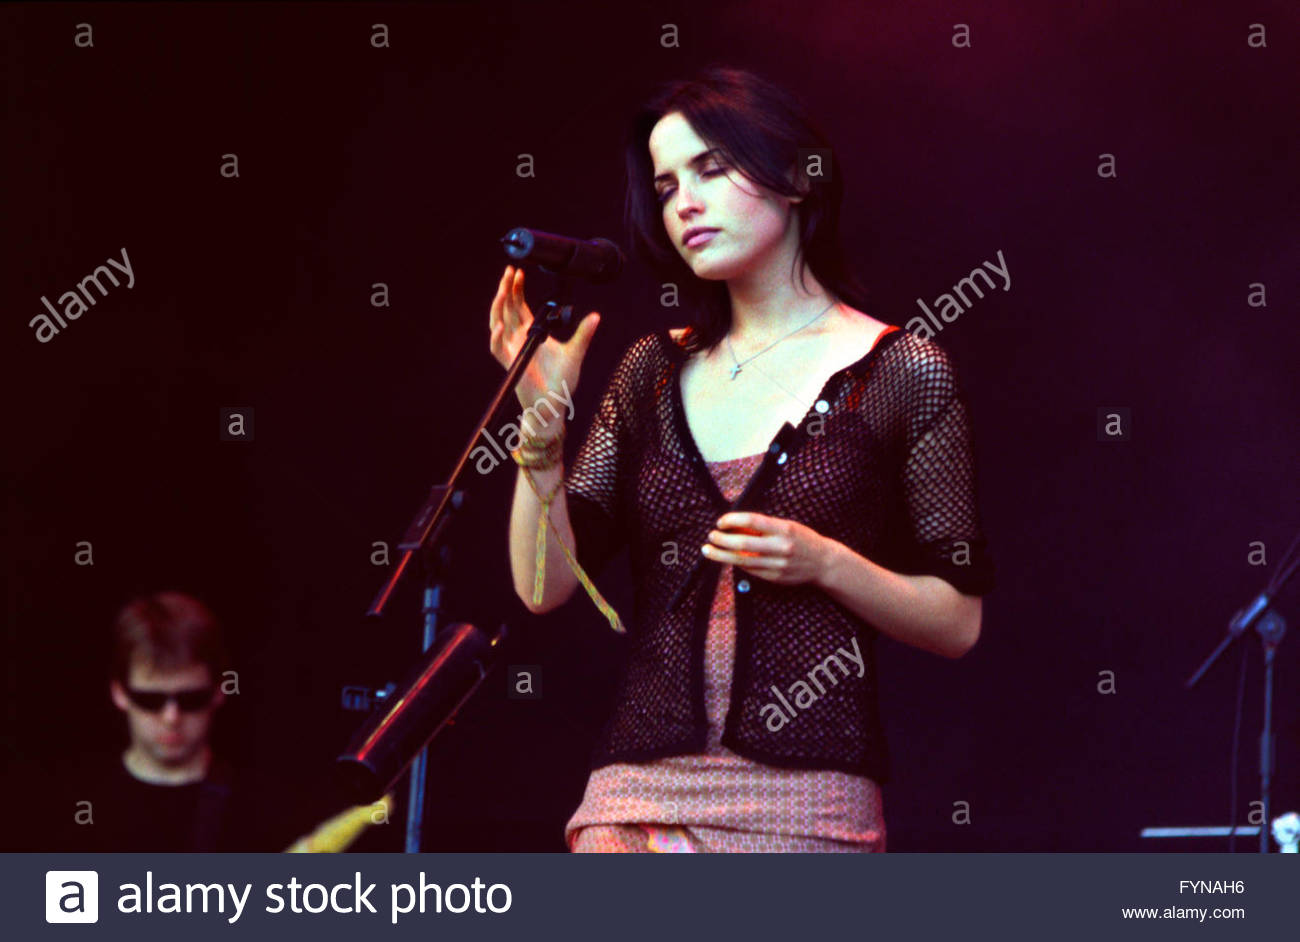 Andrea corr stock photos andrea corr stock images alamy andrea corr performing with the corrs at the glastonbury festival 1999 somerset england altavistaventures Choice Image